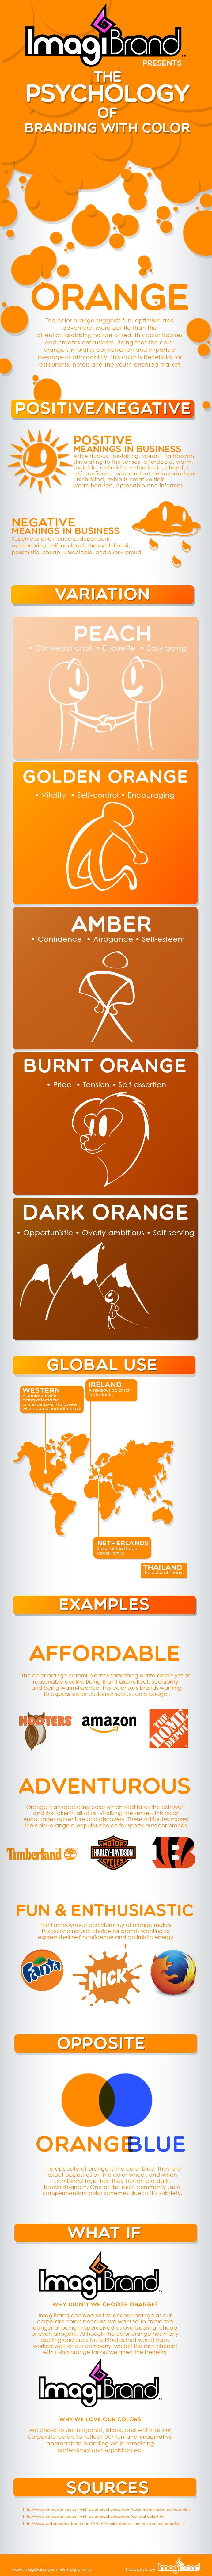 The Psychology of Orange Branding [infographic] #SocialmediaBranding. View full infographic by clicking on the link.